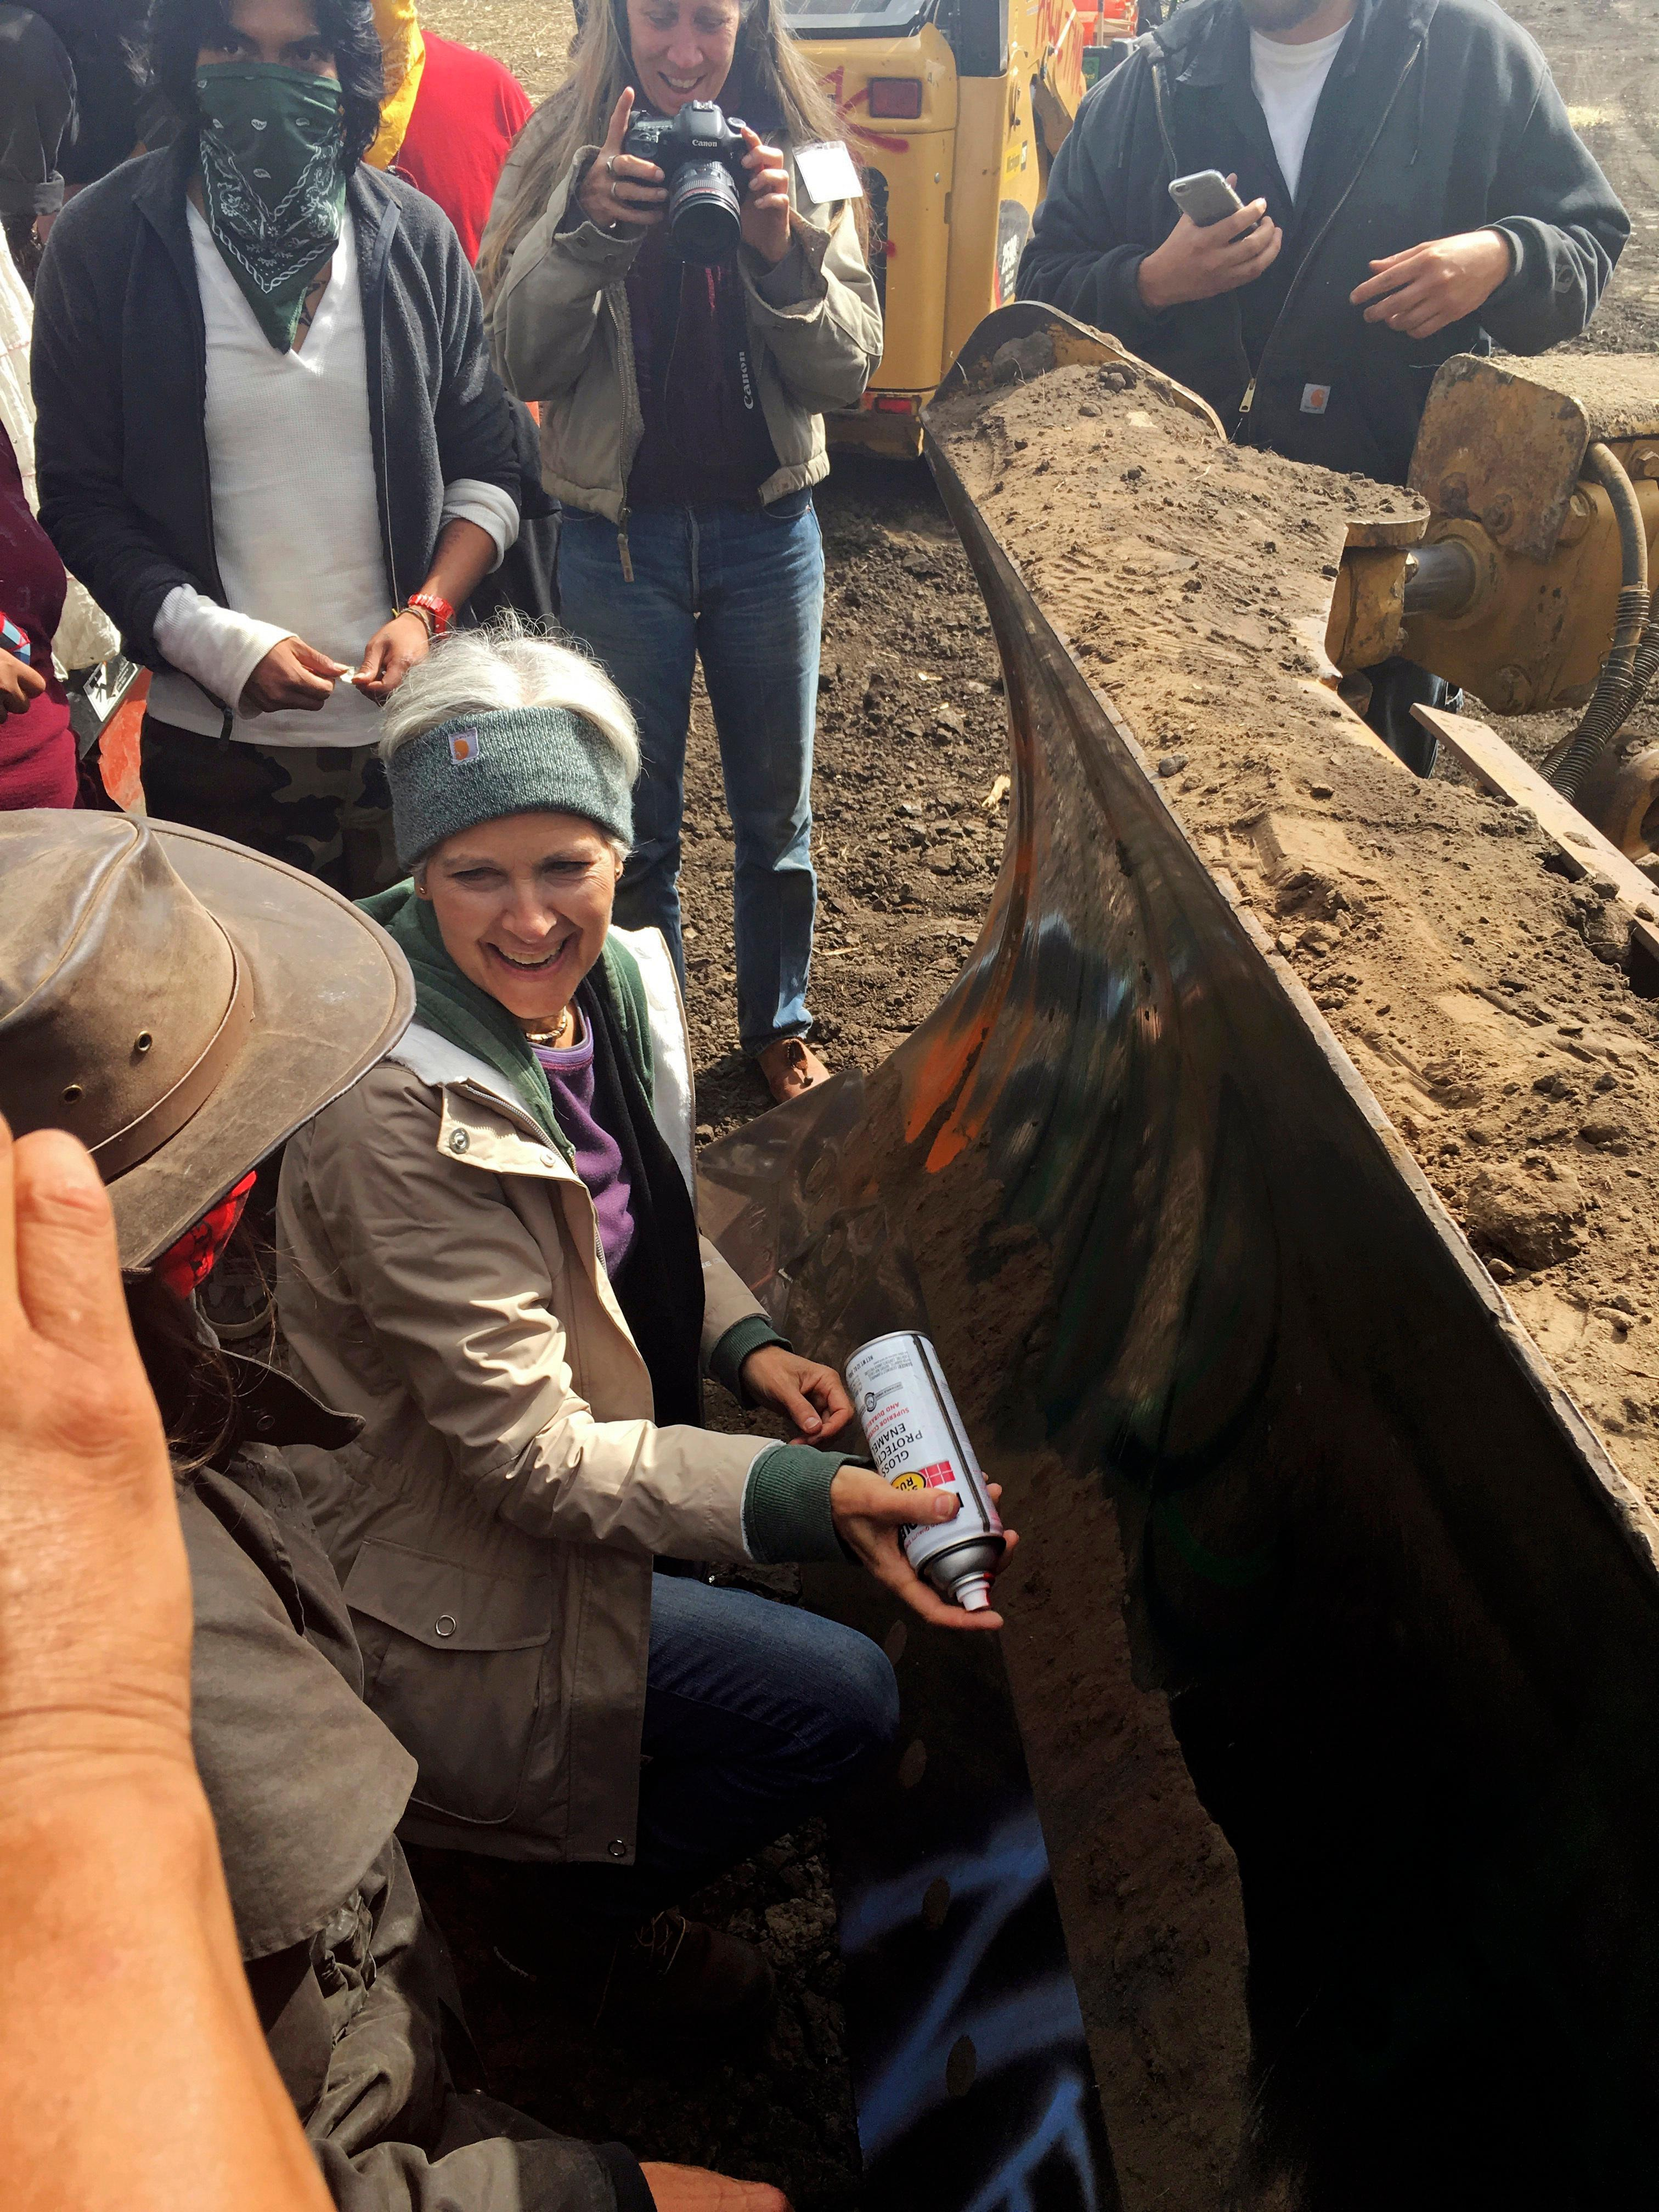 "FILE - In this Sept. 6, 2016, file photo, Green Party presidential candidate Jill Stein prepares to spray-paint ""I approve this message"" in red paint on the blade of a bulldozer at a protest against the Dakota Access Pipeline in the area of Morton County, N.D. Stein has reached a plea agreement with prosecutors to resolve criminal charges filed against her in North Dakota nearly a year ago for protesting the Dakota Access oil pipeline, court records show. (Alicia Ewen/KX News via AP, File)"